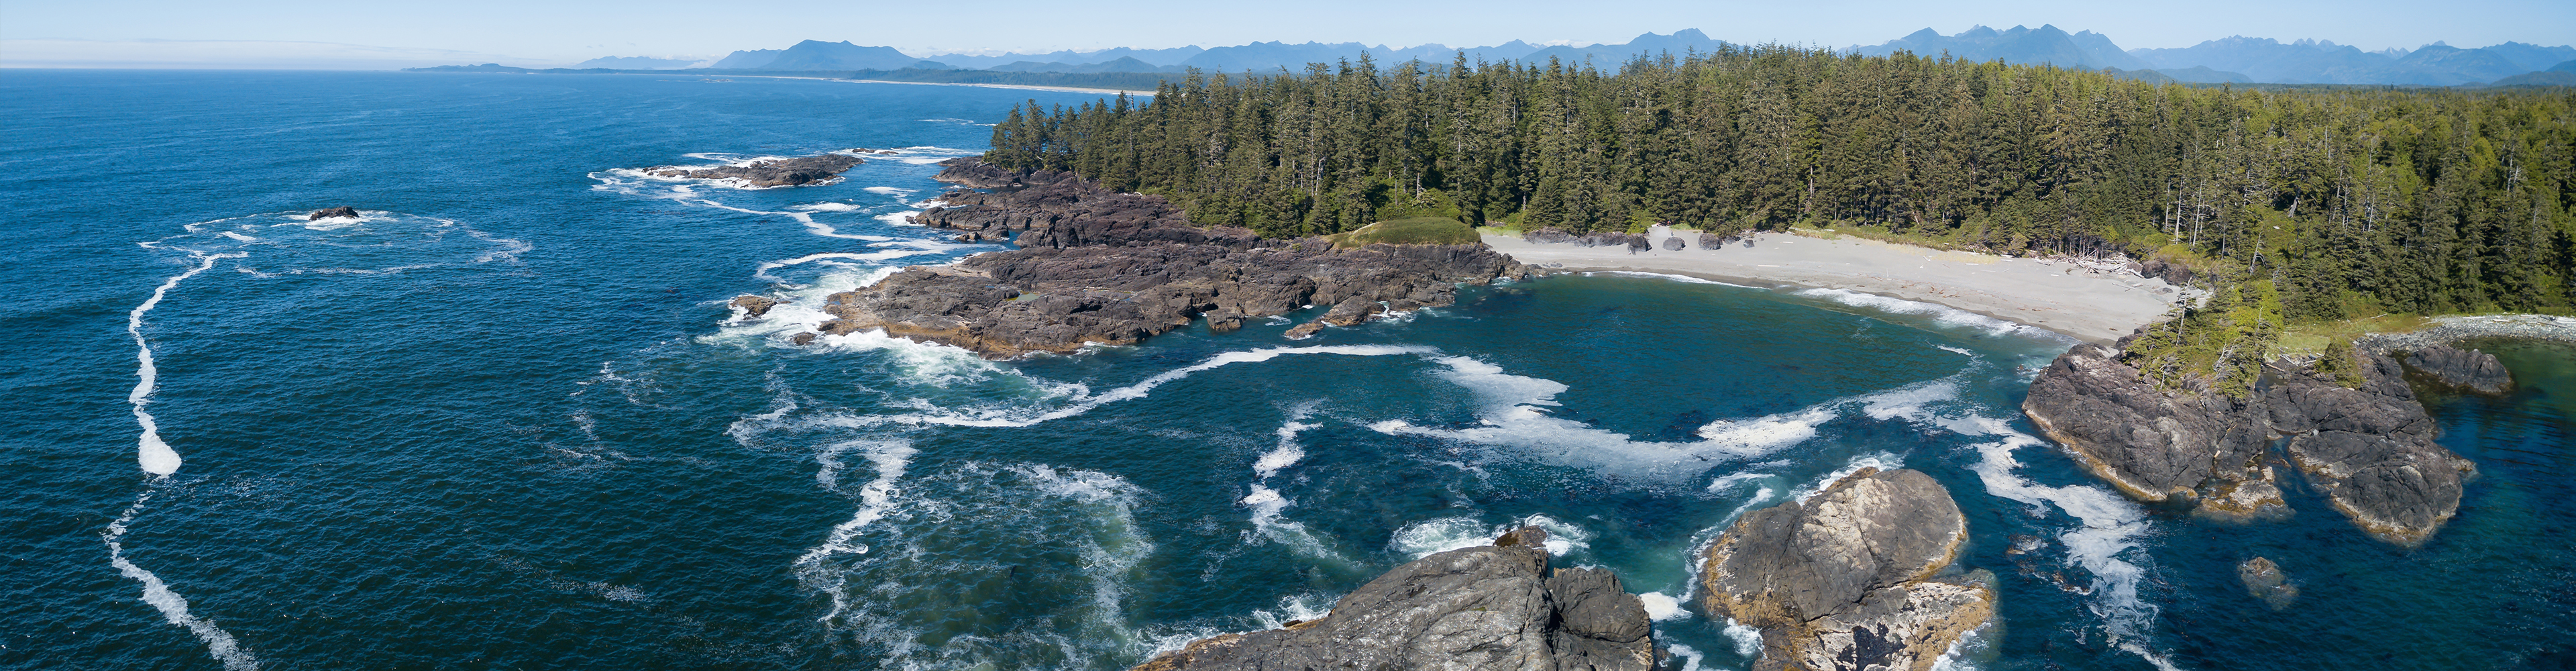 Highlights of Vancouver Island